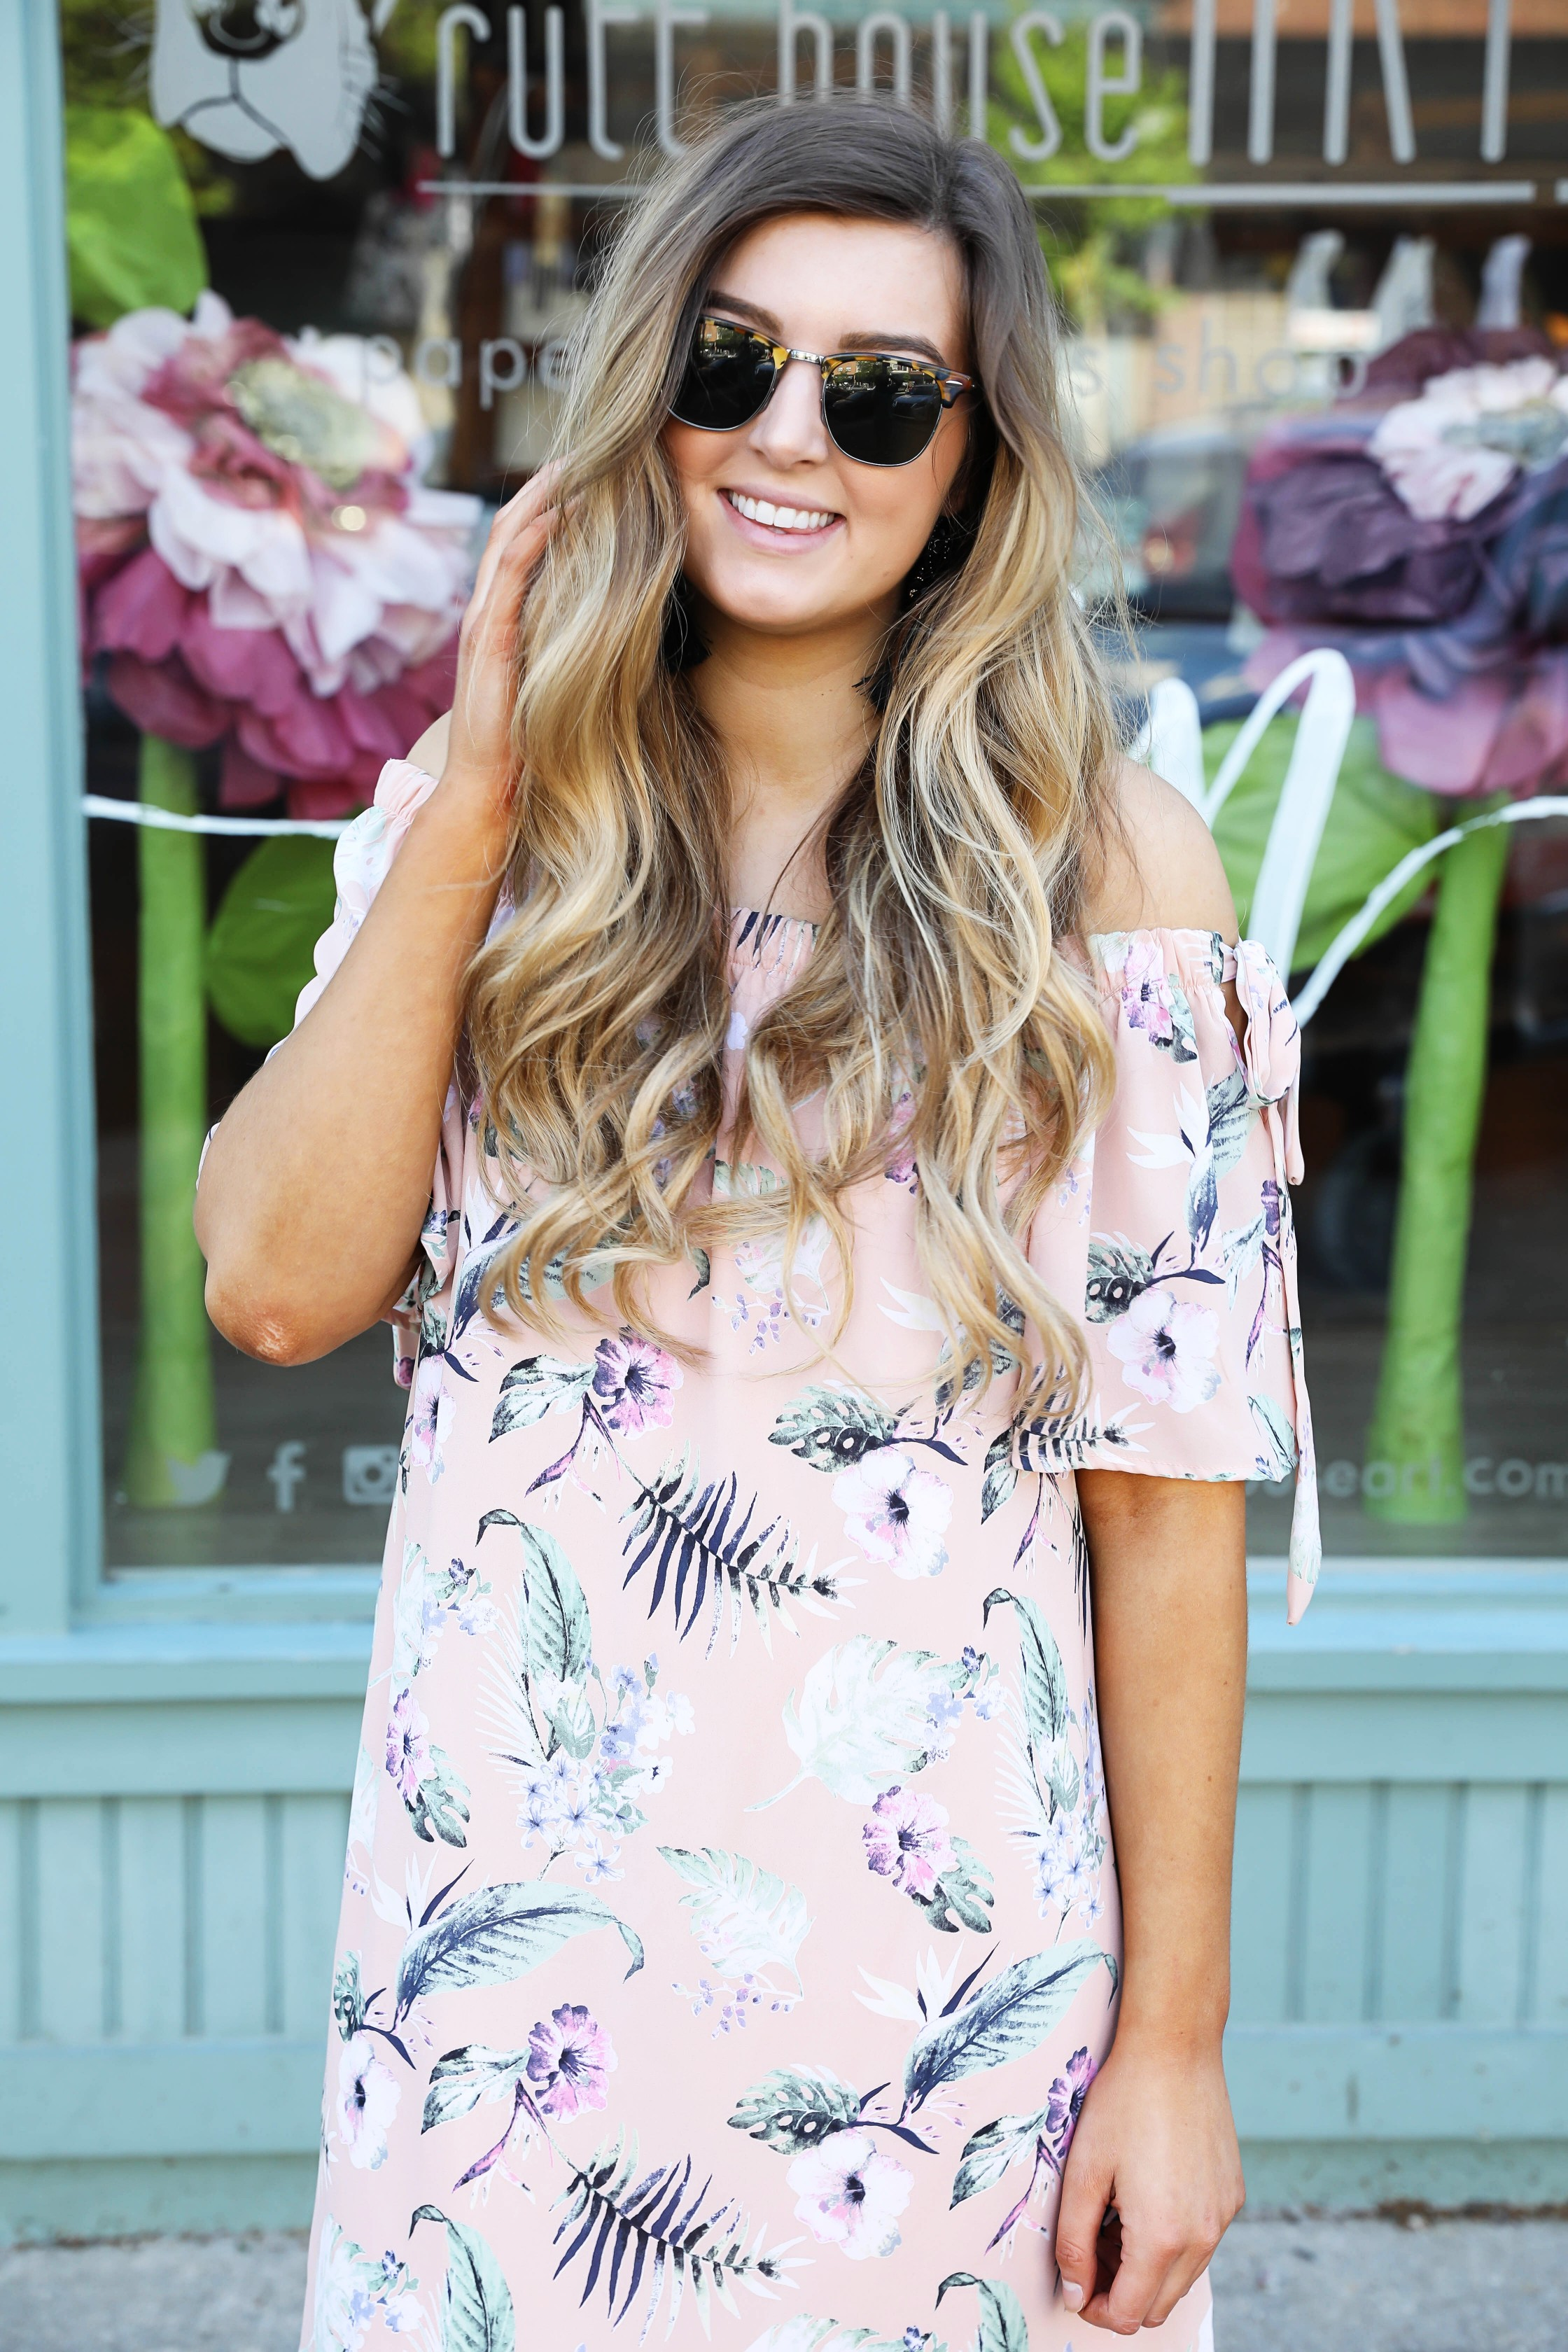 Peach tropical off the shoulder dress by Red Dress Boutique posted on Daily Dose of Charm by Lauren Lindmark dailydoseofcharm.com